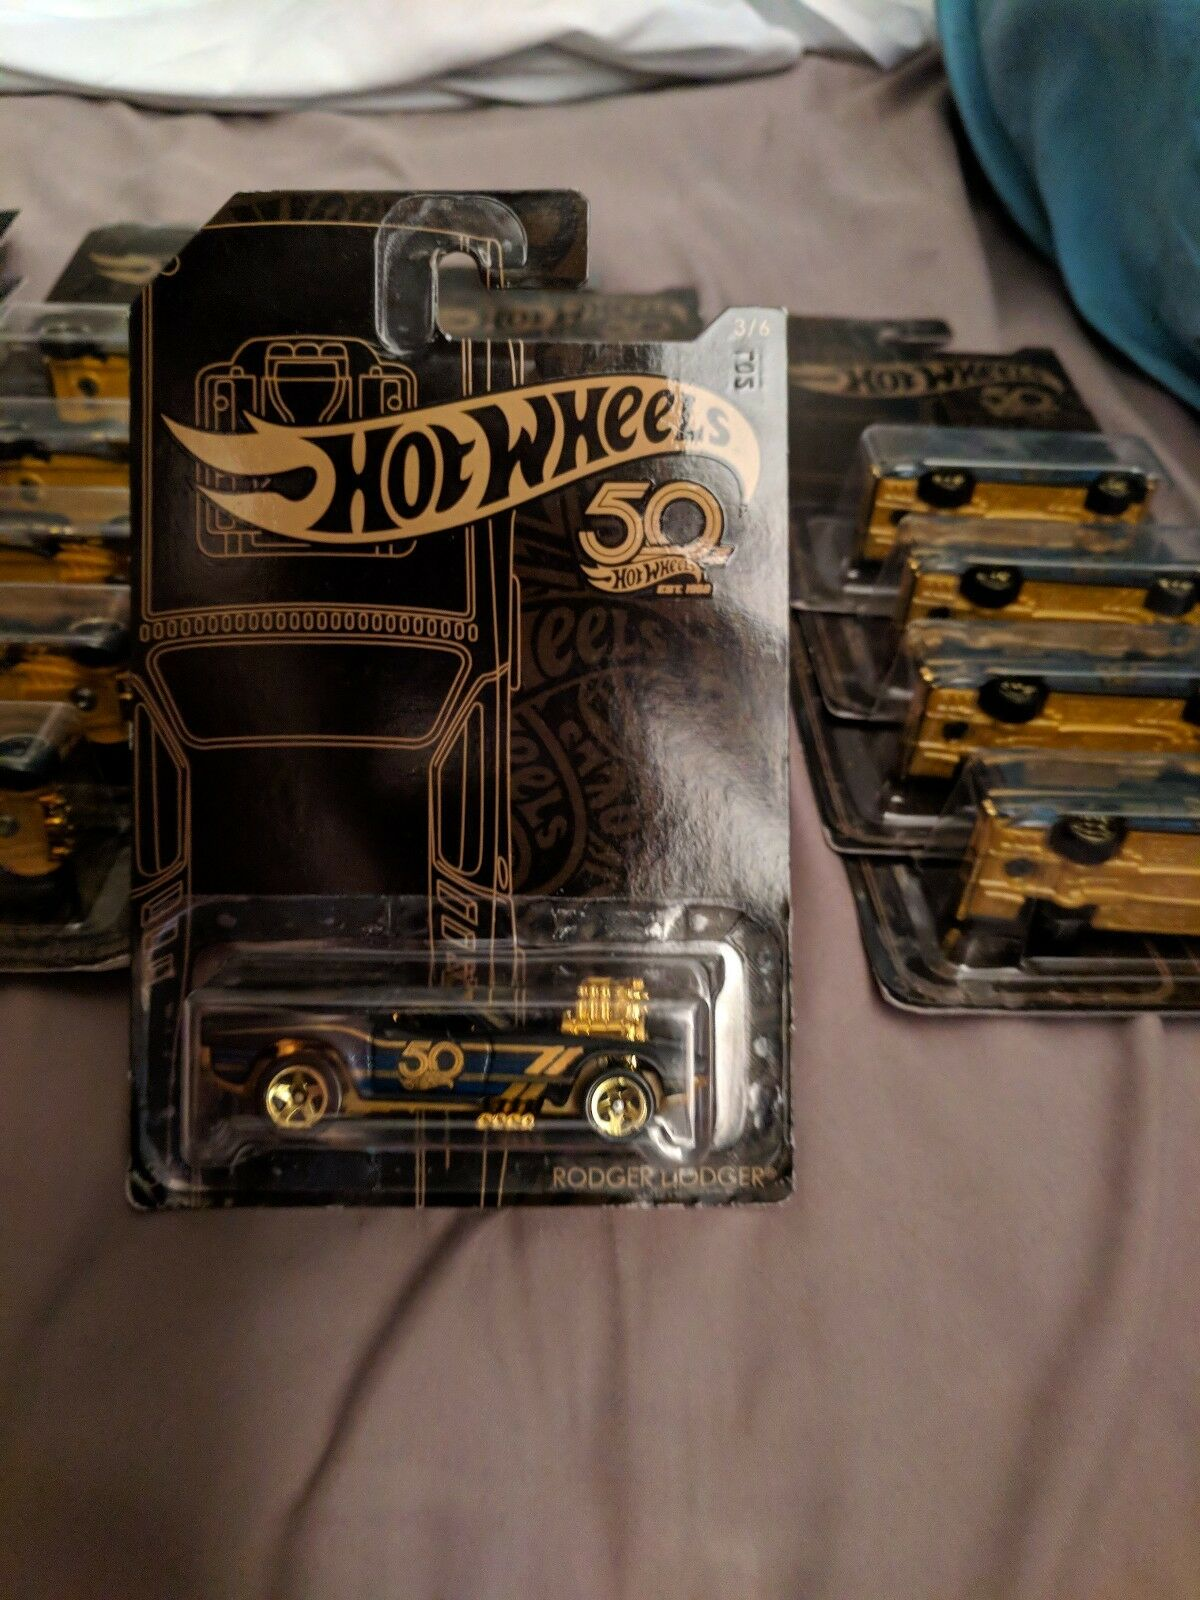 (mis à jour) HOT WHEELS 2018 50th ANNIVERSAIRE noir et or 7 Ensembles de 6 disponible.